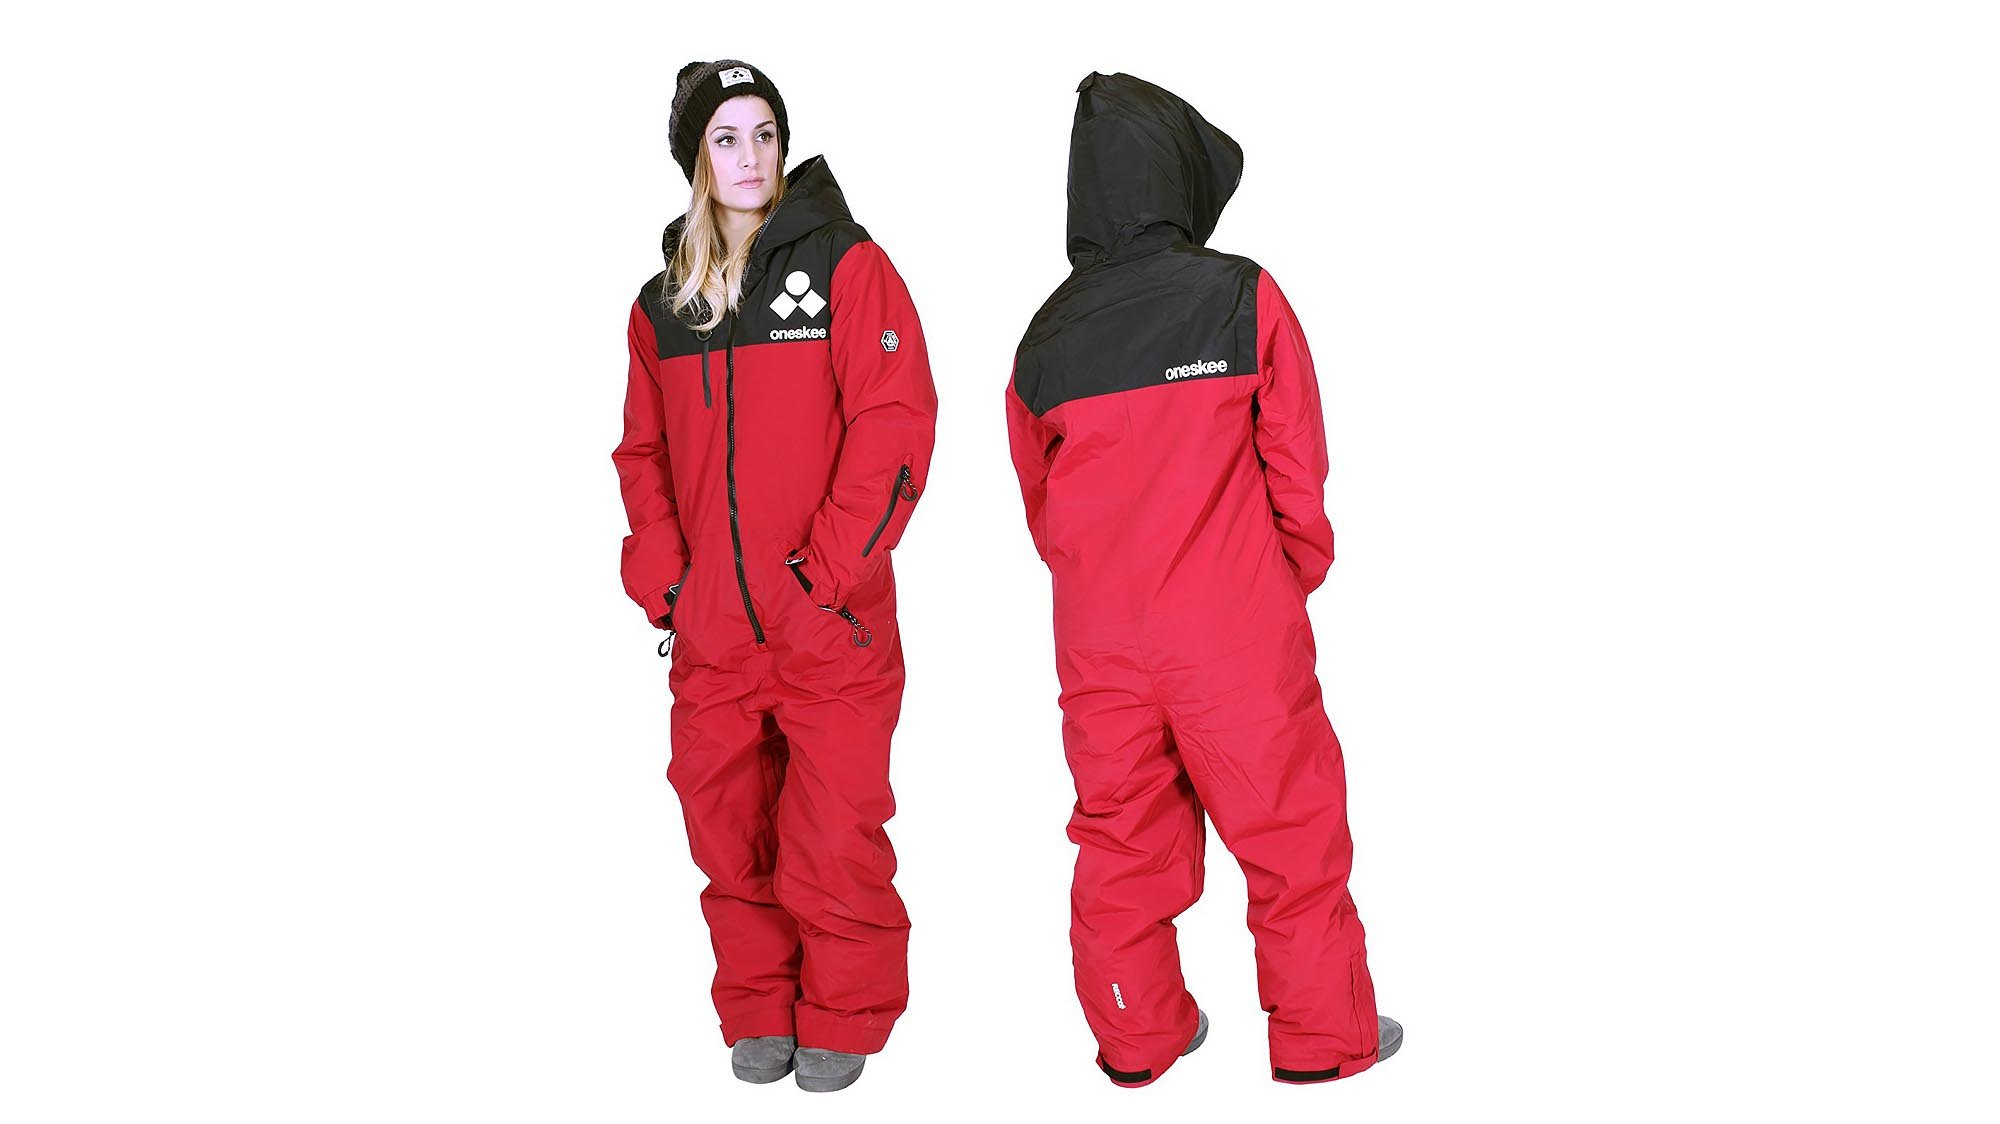 Oneskee s fun ski suits are a great alternative to a jacket and salopette  combo. They offer great waterproofing 8b38bbf6e